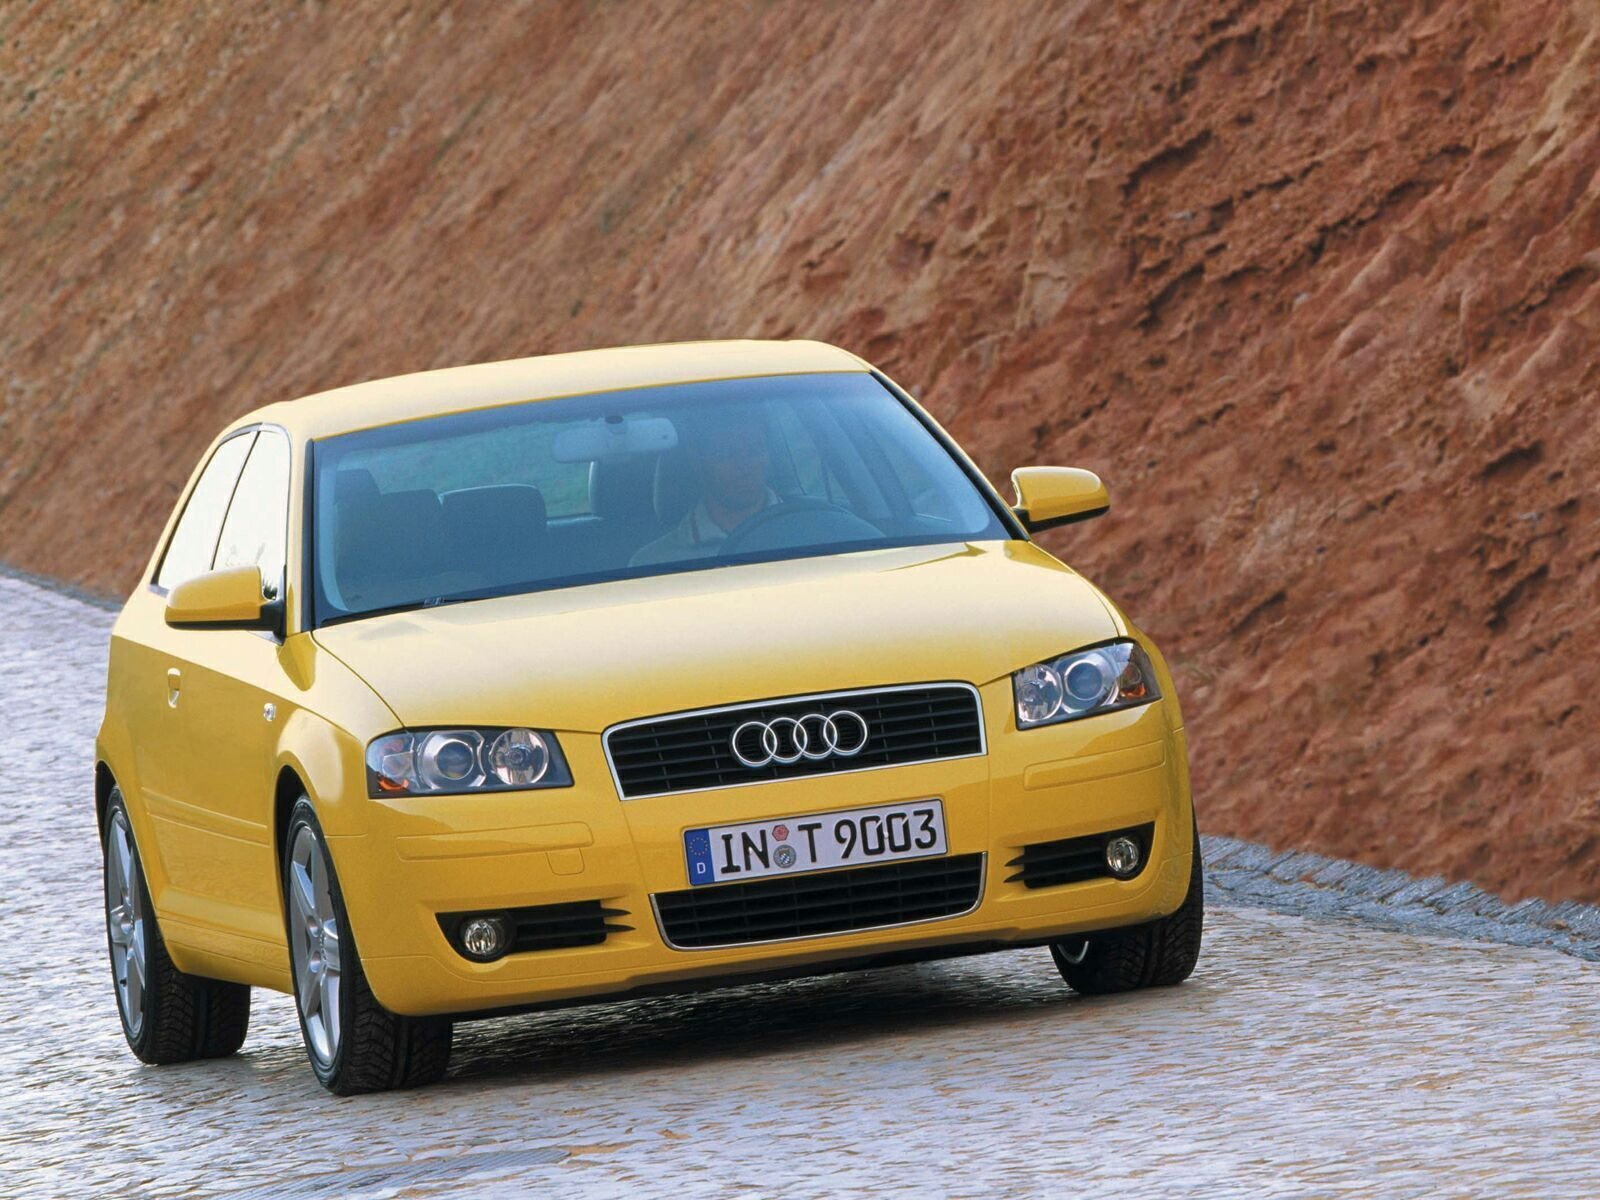 2003 audi a3 picture 29630 car review top speed. Black Bedroom Furniture Sets. Home Design Ideas